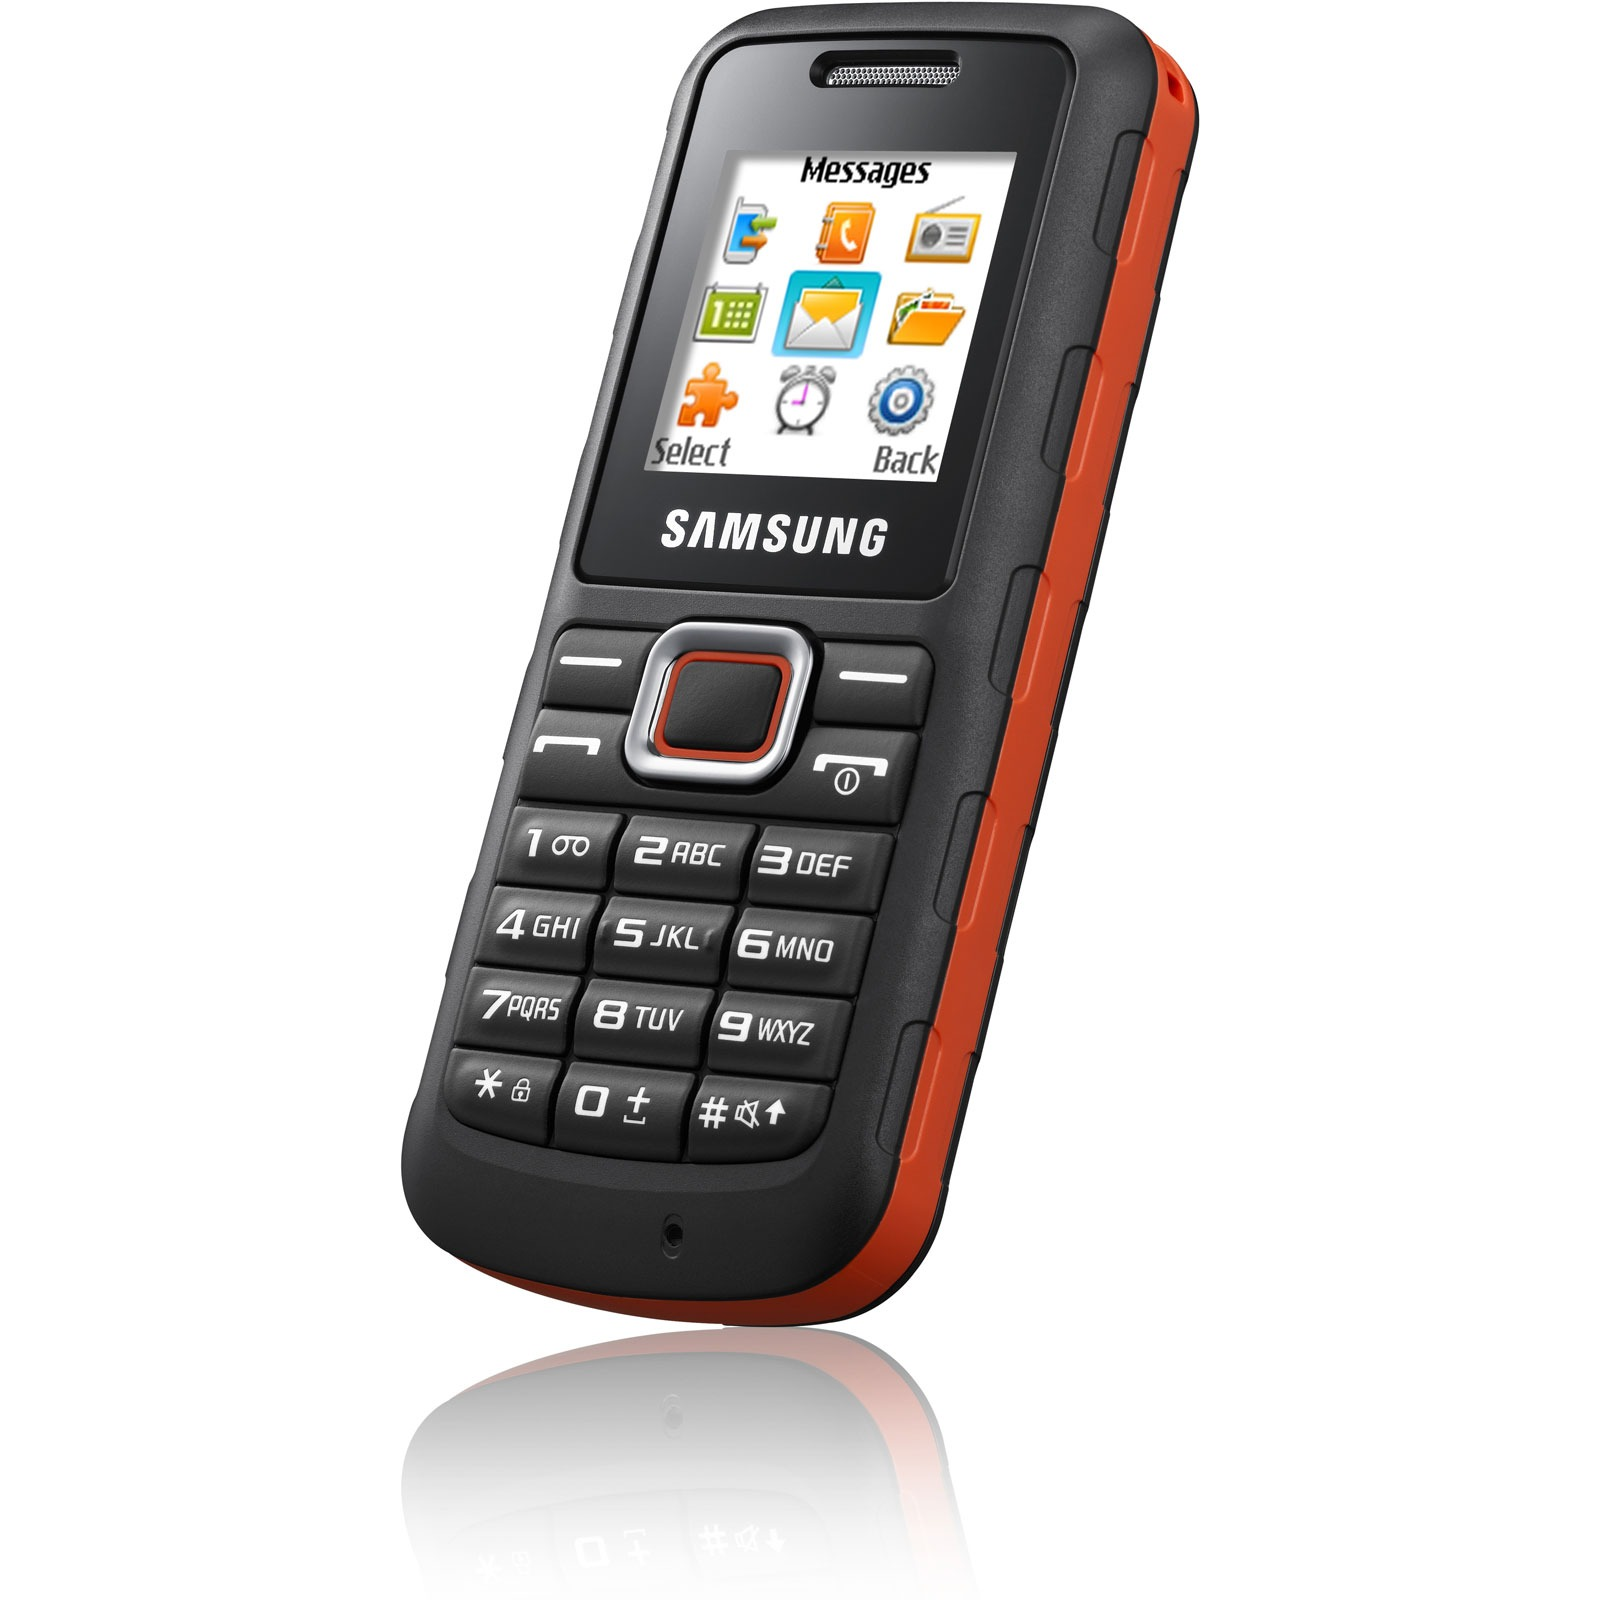 samsung e1130 noir orange mobile smartphone samsung sur. Black Bedroom Furniture Sets. Home Design Ideas